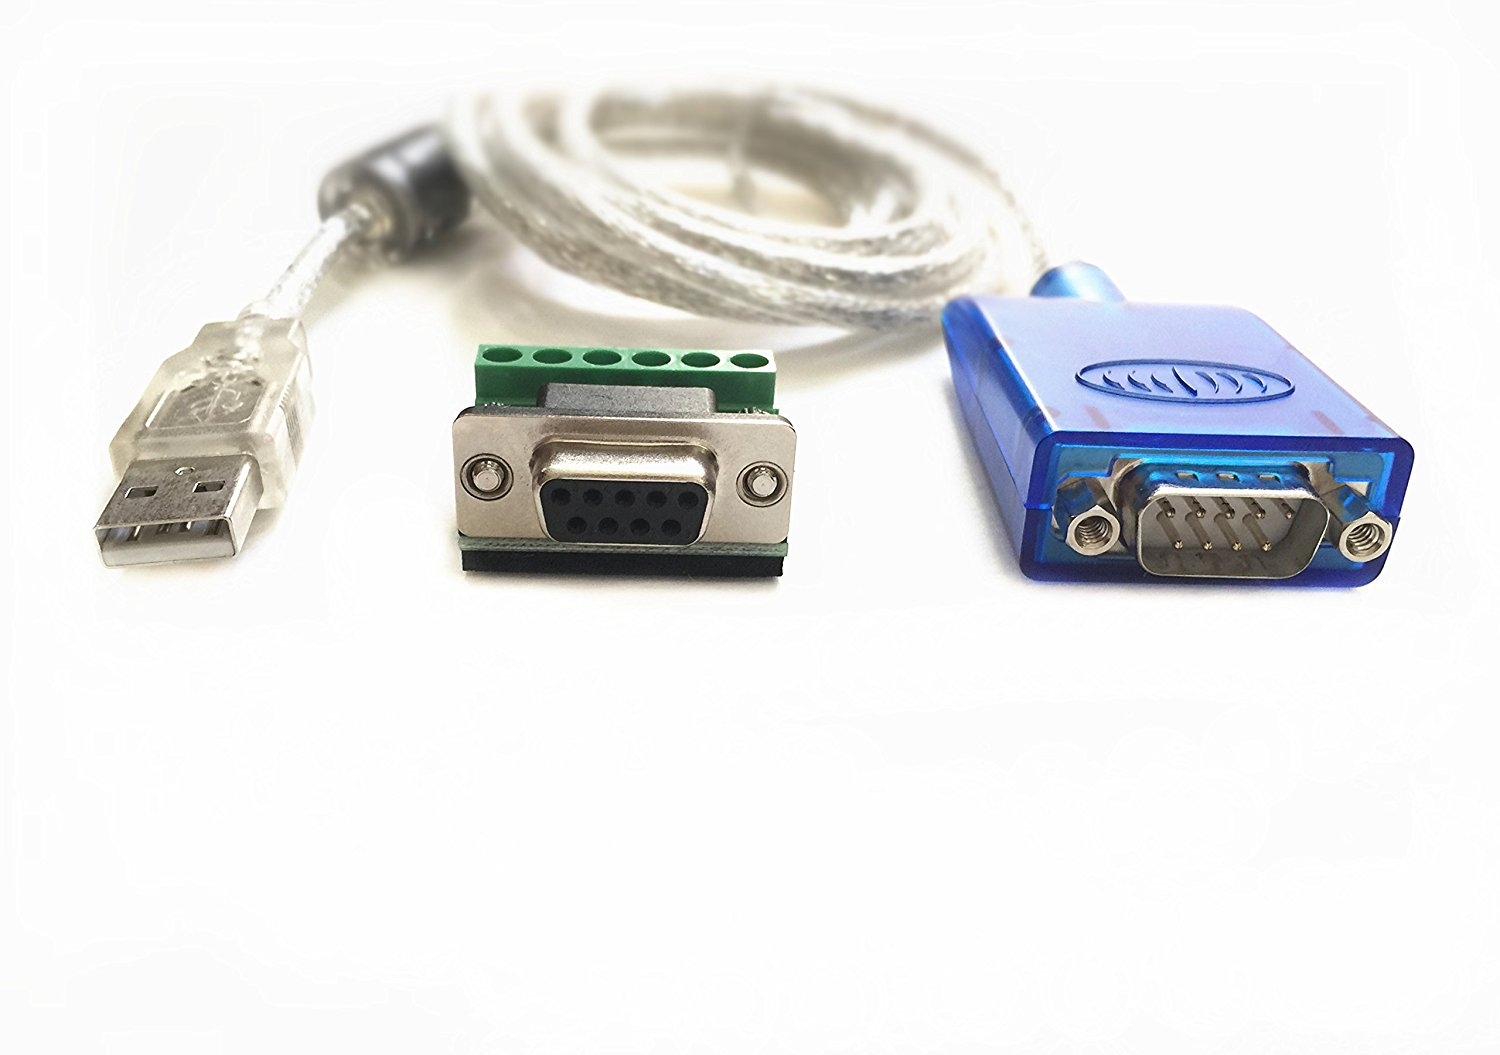 EZSync FTDI Chip USB to RS485/RS422 Serial Adapter Cable with RX/TX on usb to ps2 wiring-diagram, usb cable drawing, usb type a dimensions, usb cord wire diagram, usb pinout diagram, usb type a plug, usb pin assignment, usb type a power, usb wire diagram and function, usb pin diagram, usb 3.0 header pinout, usb plug diagram, usb 3.0 wiring, micro usb wiring diagram, usb type a pinout, usb connector wiring, usb connections diagram, usb sound wiring diagram, usb cable diagram, usb type a cable,